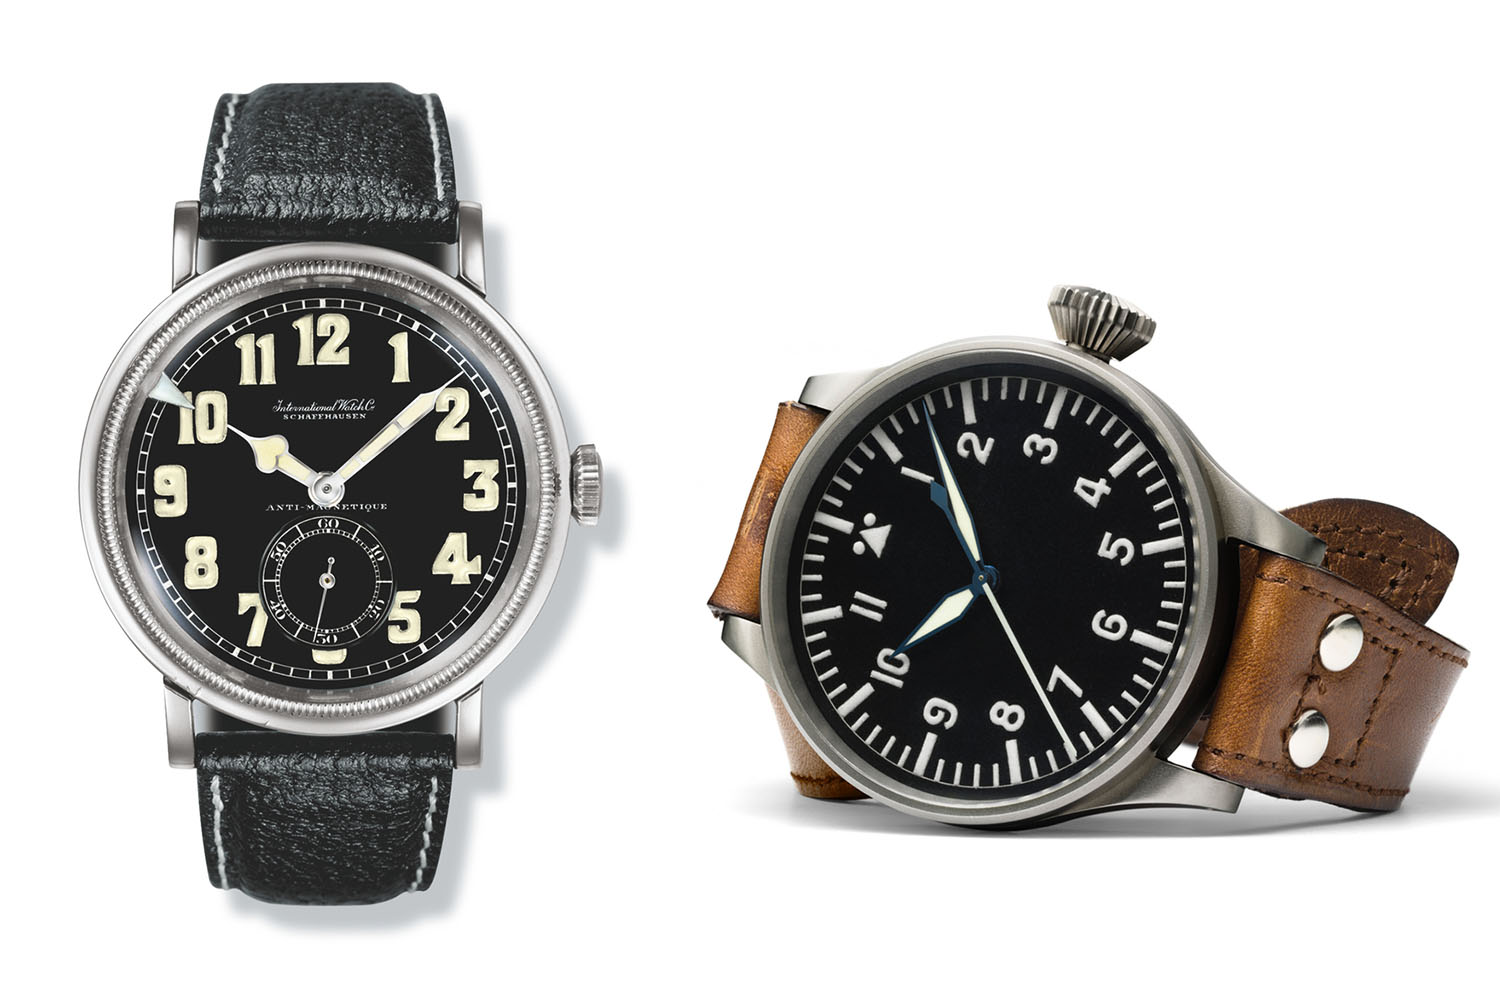 iwc-pilot-watches-vintage